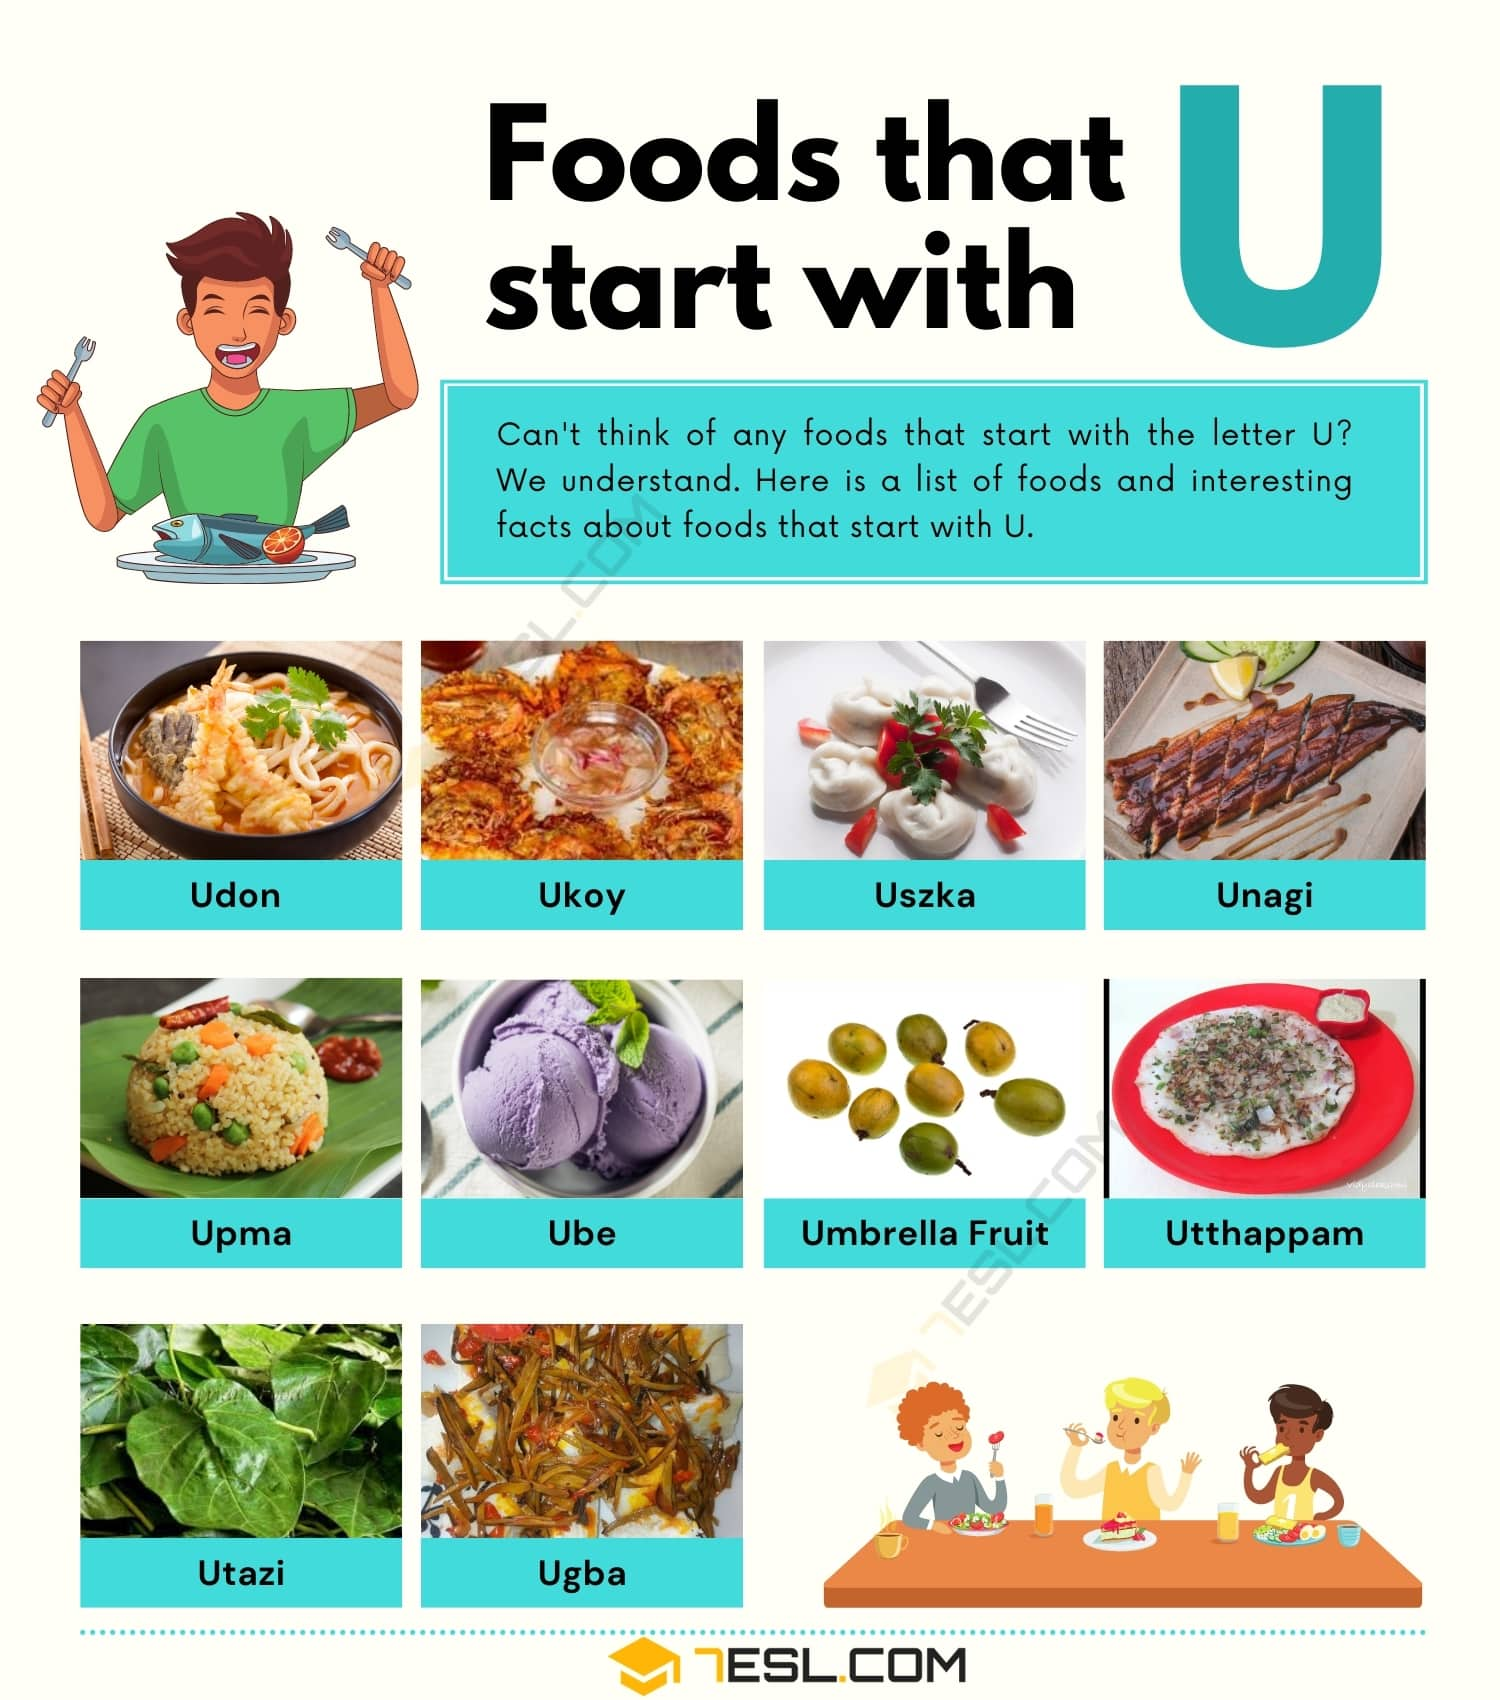 Foods that Start with U: 10 Tasty Foods that Start with U